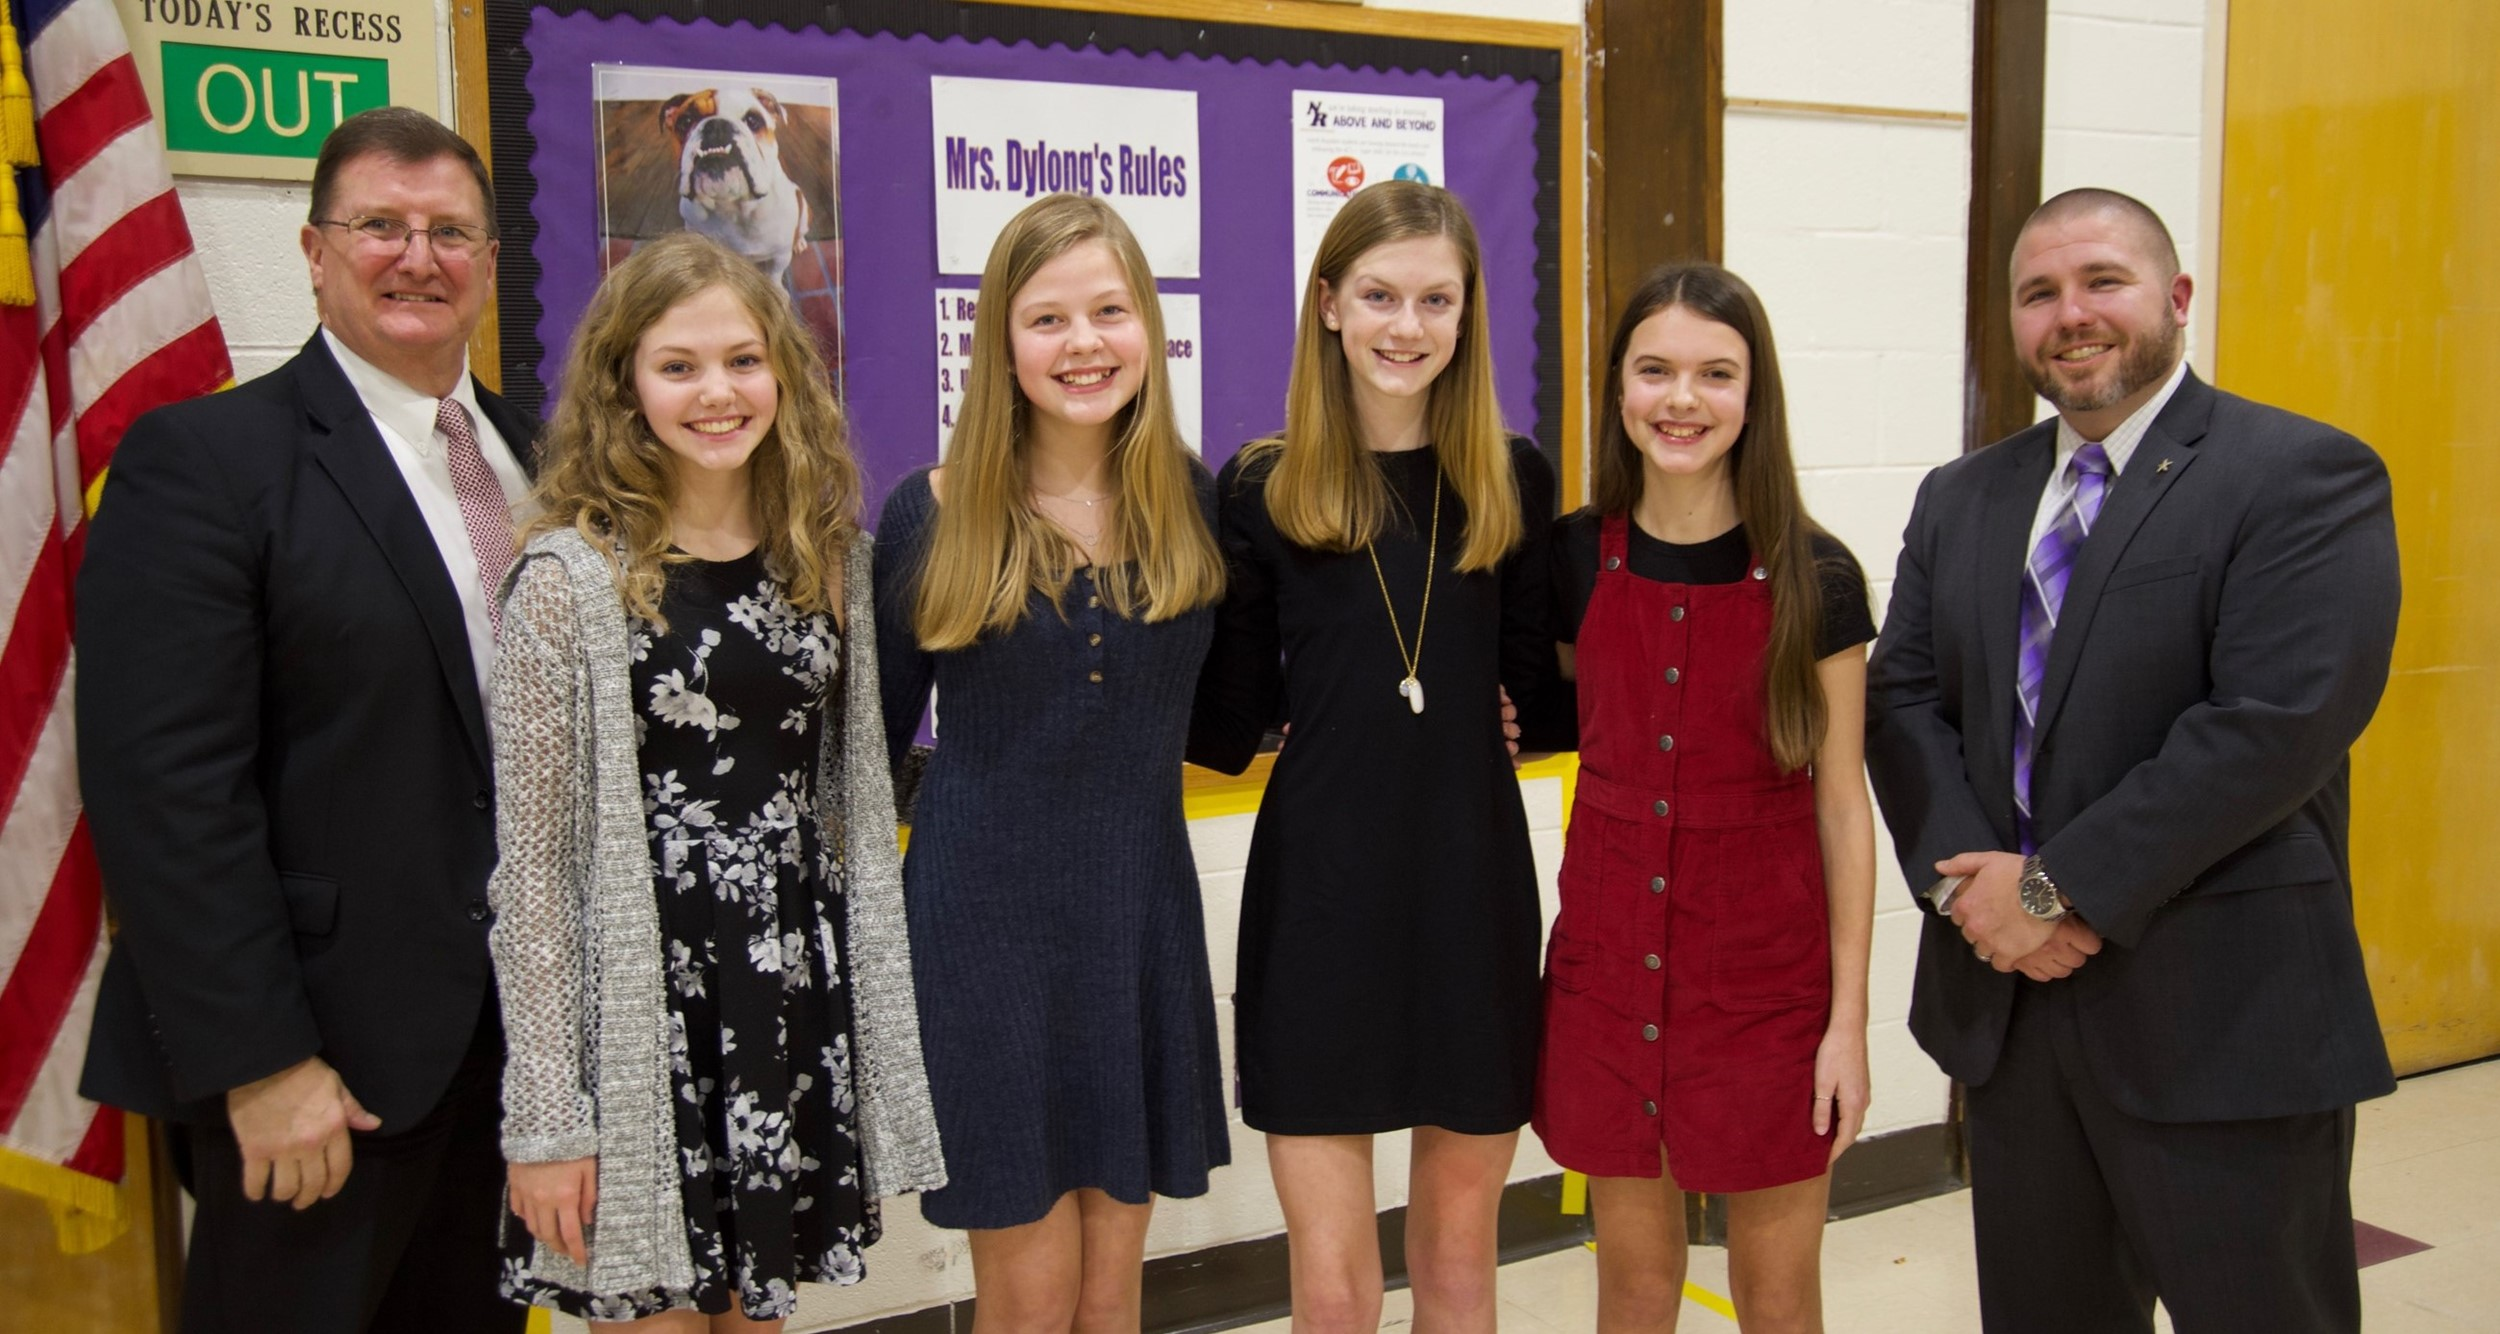 North Royalton Middle School students recognized at February board meeting